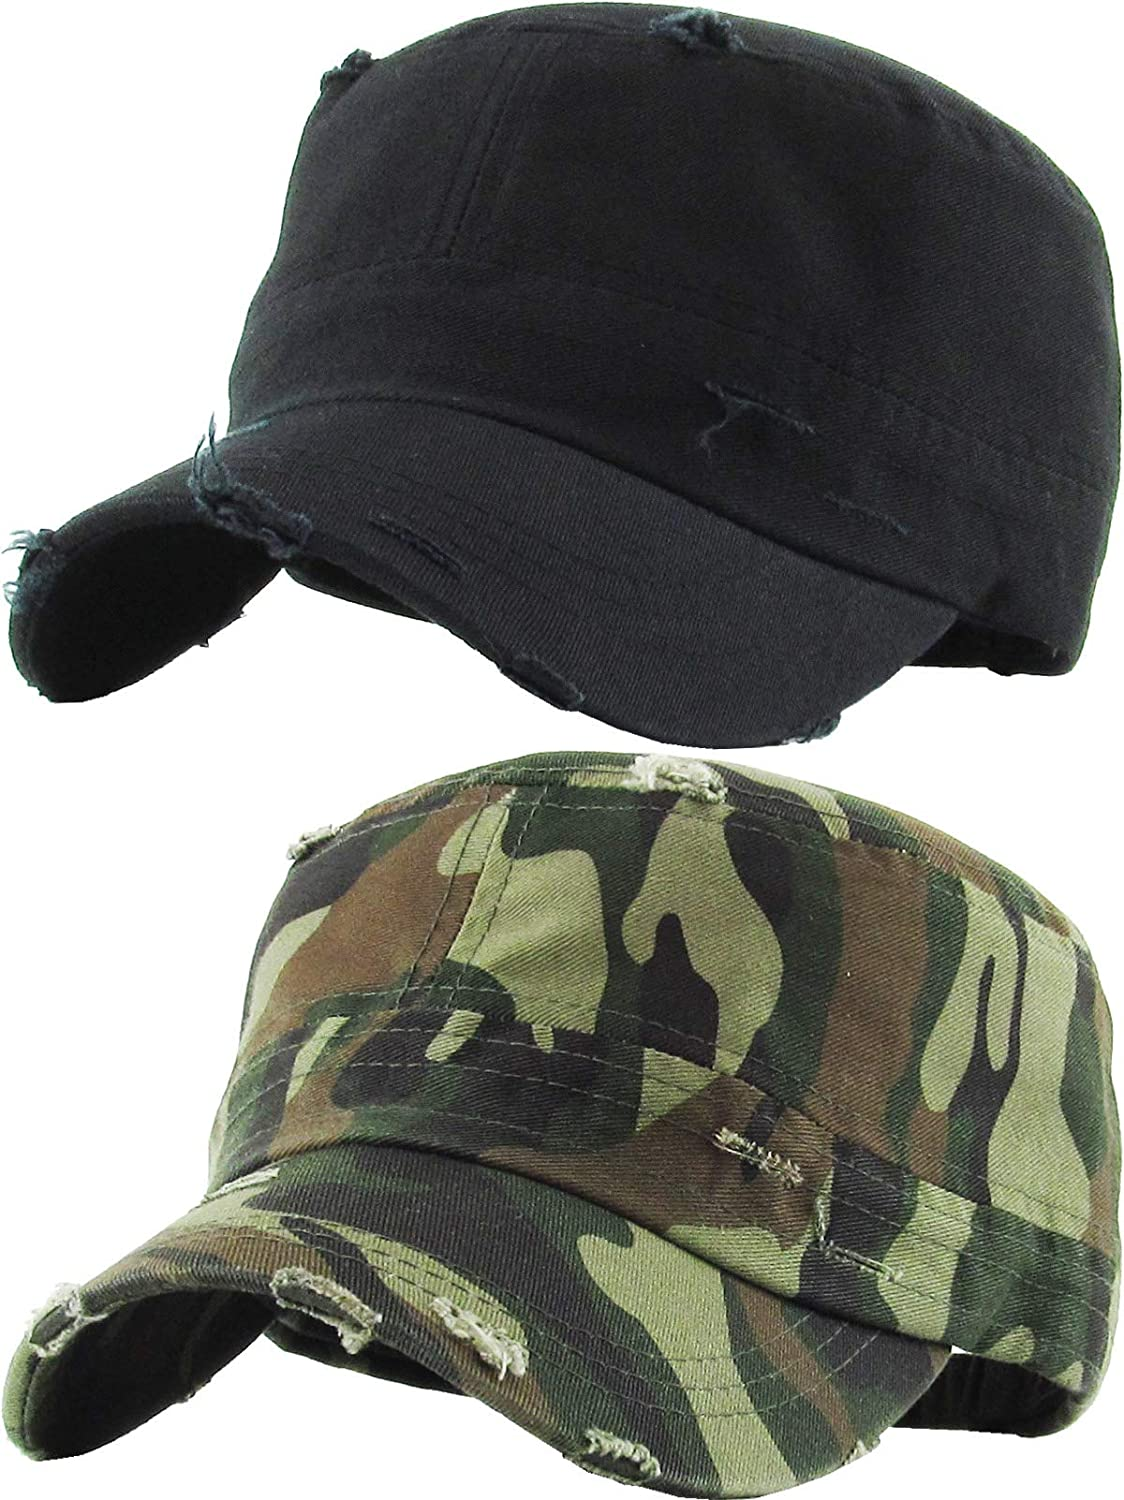 c1c369c59 Funky Junque Military Style Cadet Hat Army Vintage Distressed Adjustable Cap